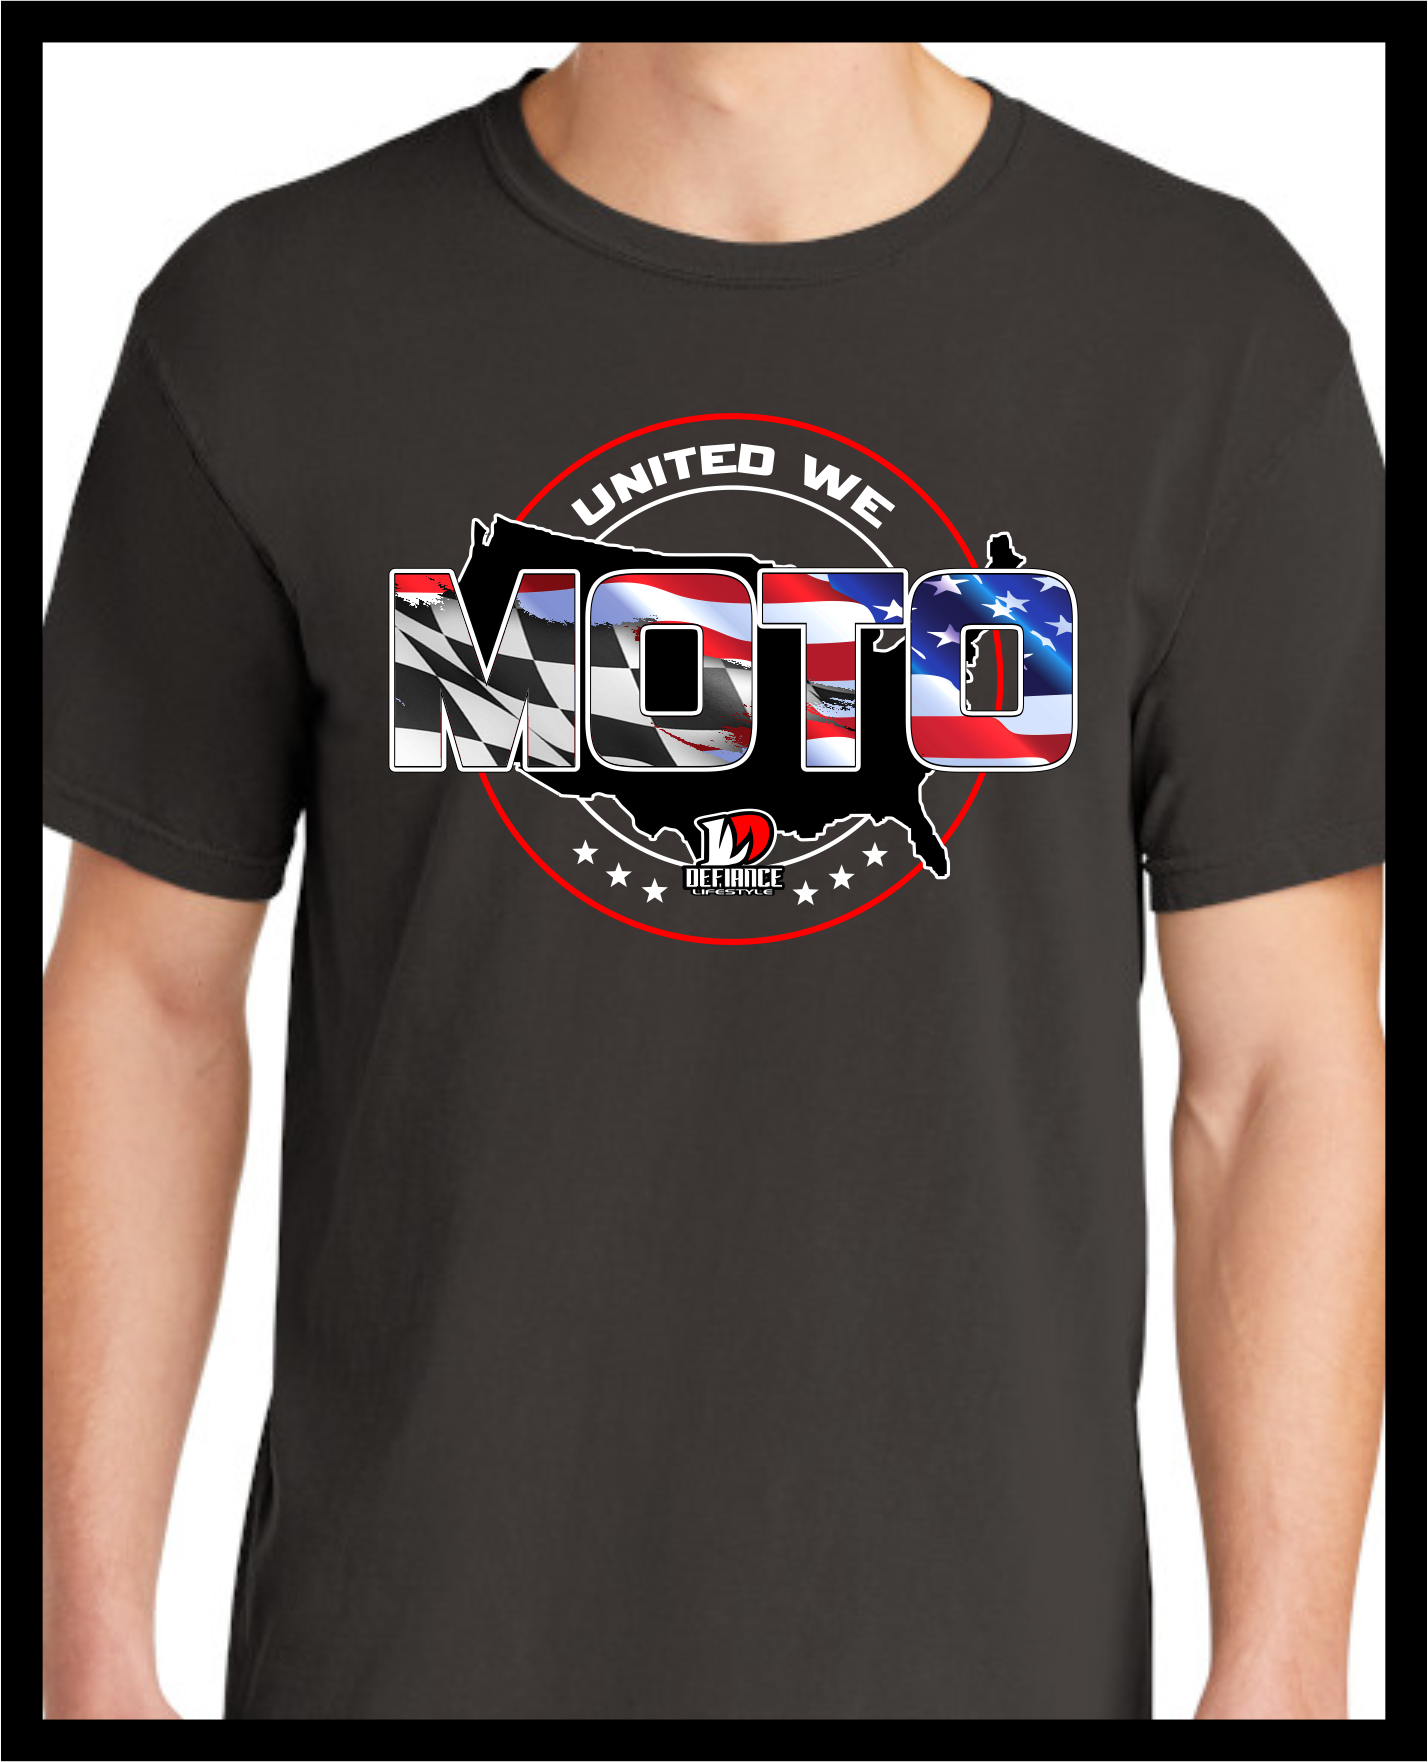 UNITED We MOTO Race T-Shirt - black - Defiance Lifestyle, Race Apparel - Casual to Custom